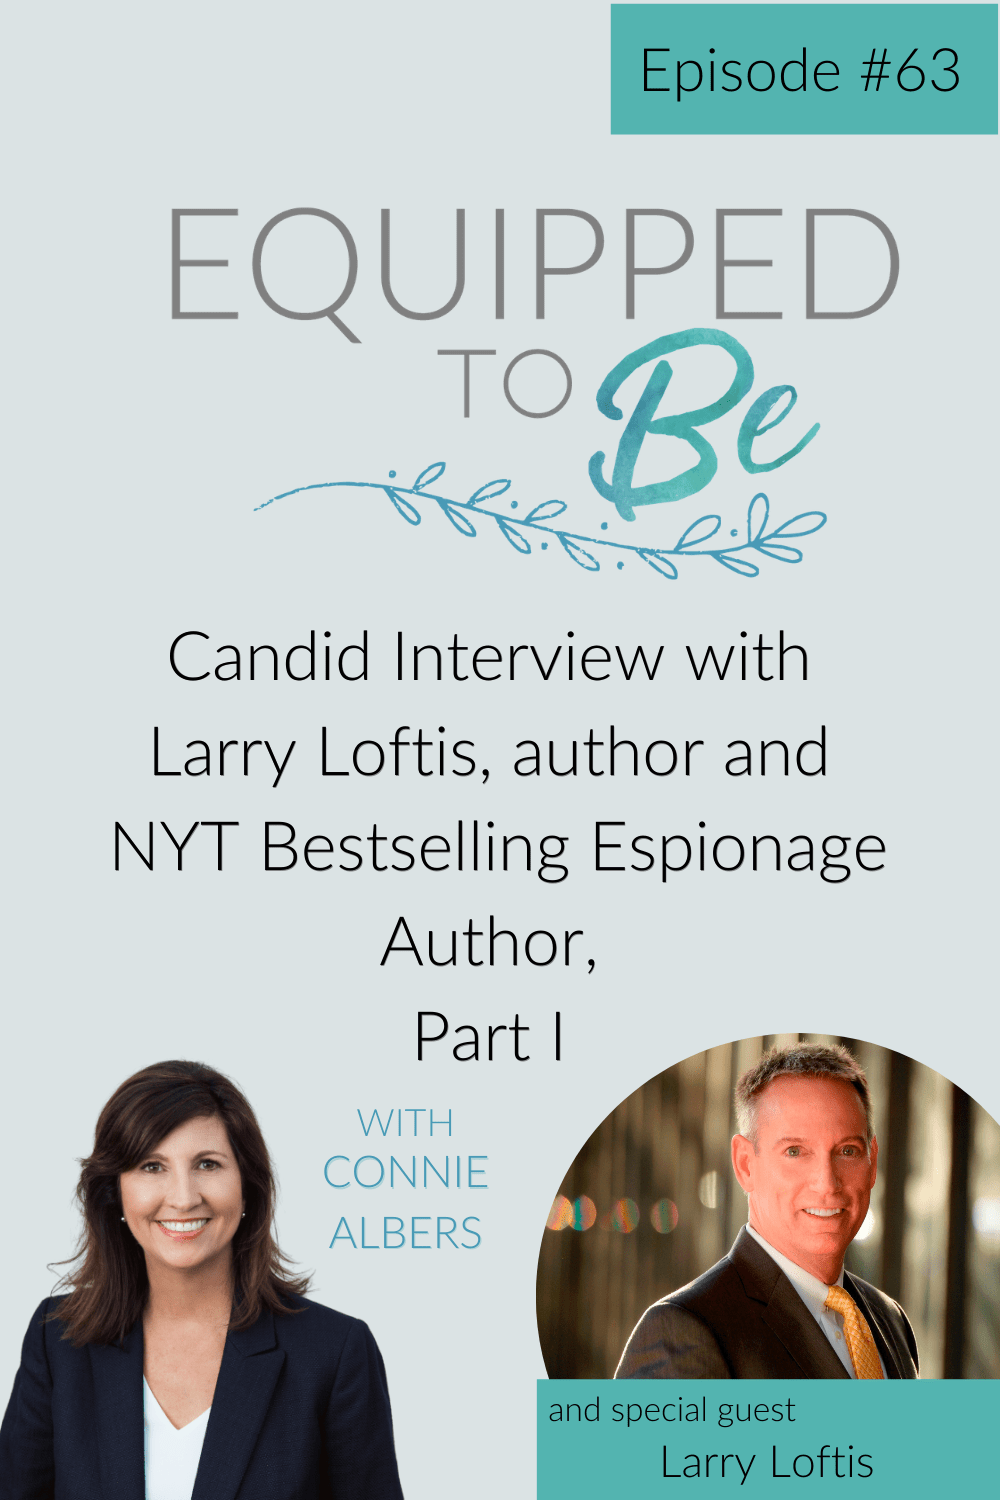 Candid Interview with Larry Loftis, author and NYT Bestselling Espionage Author, Part I - ETB #63